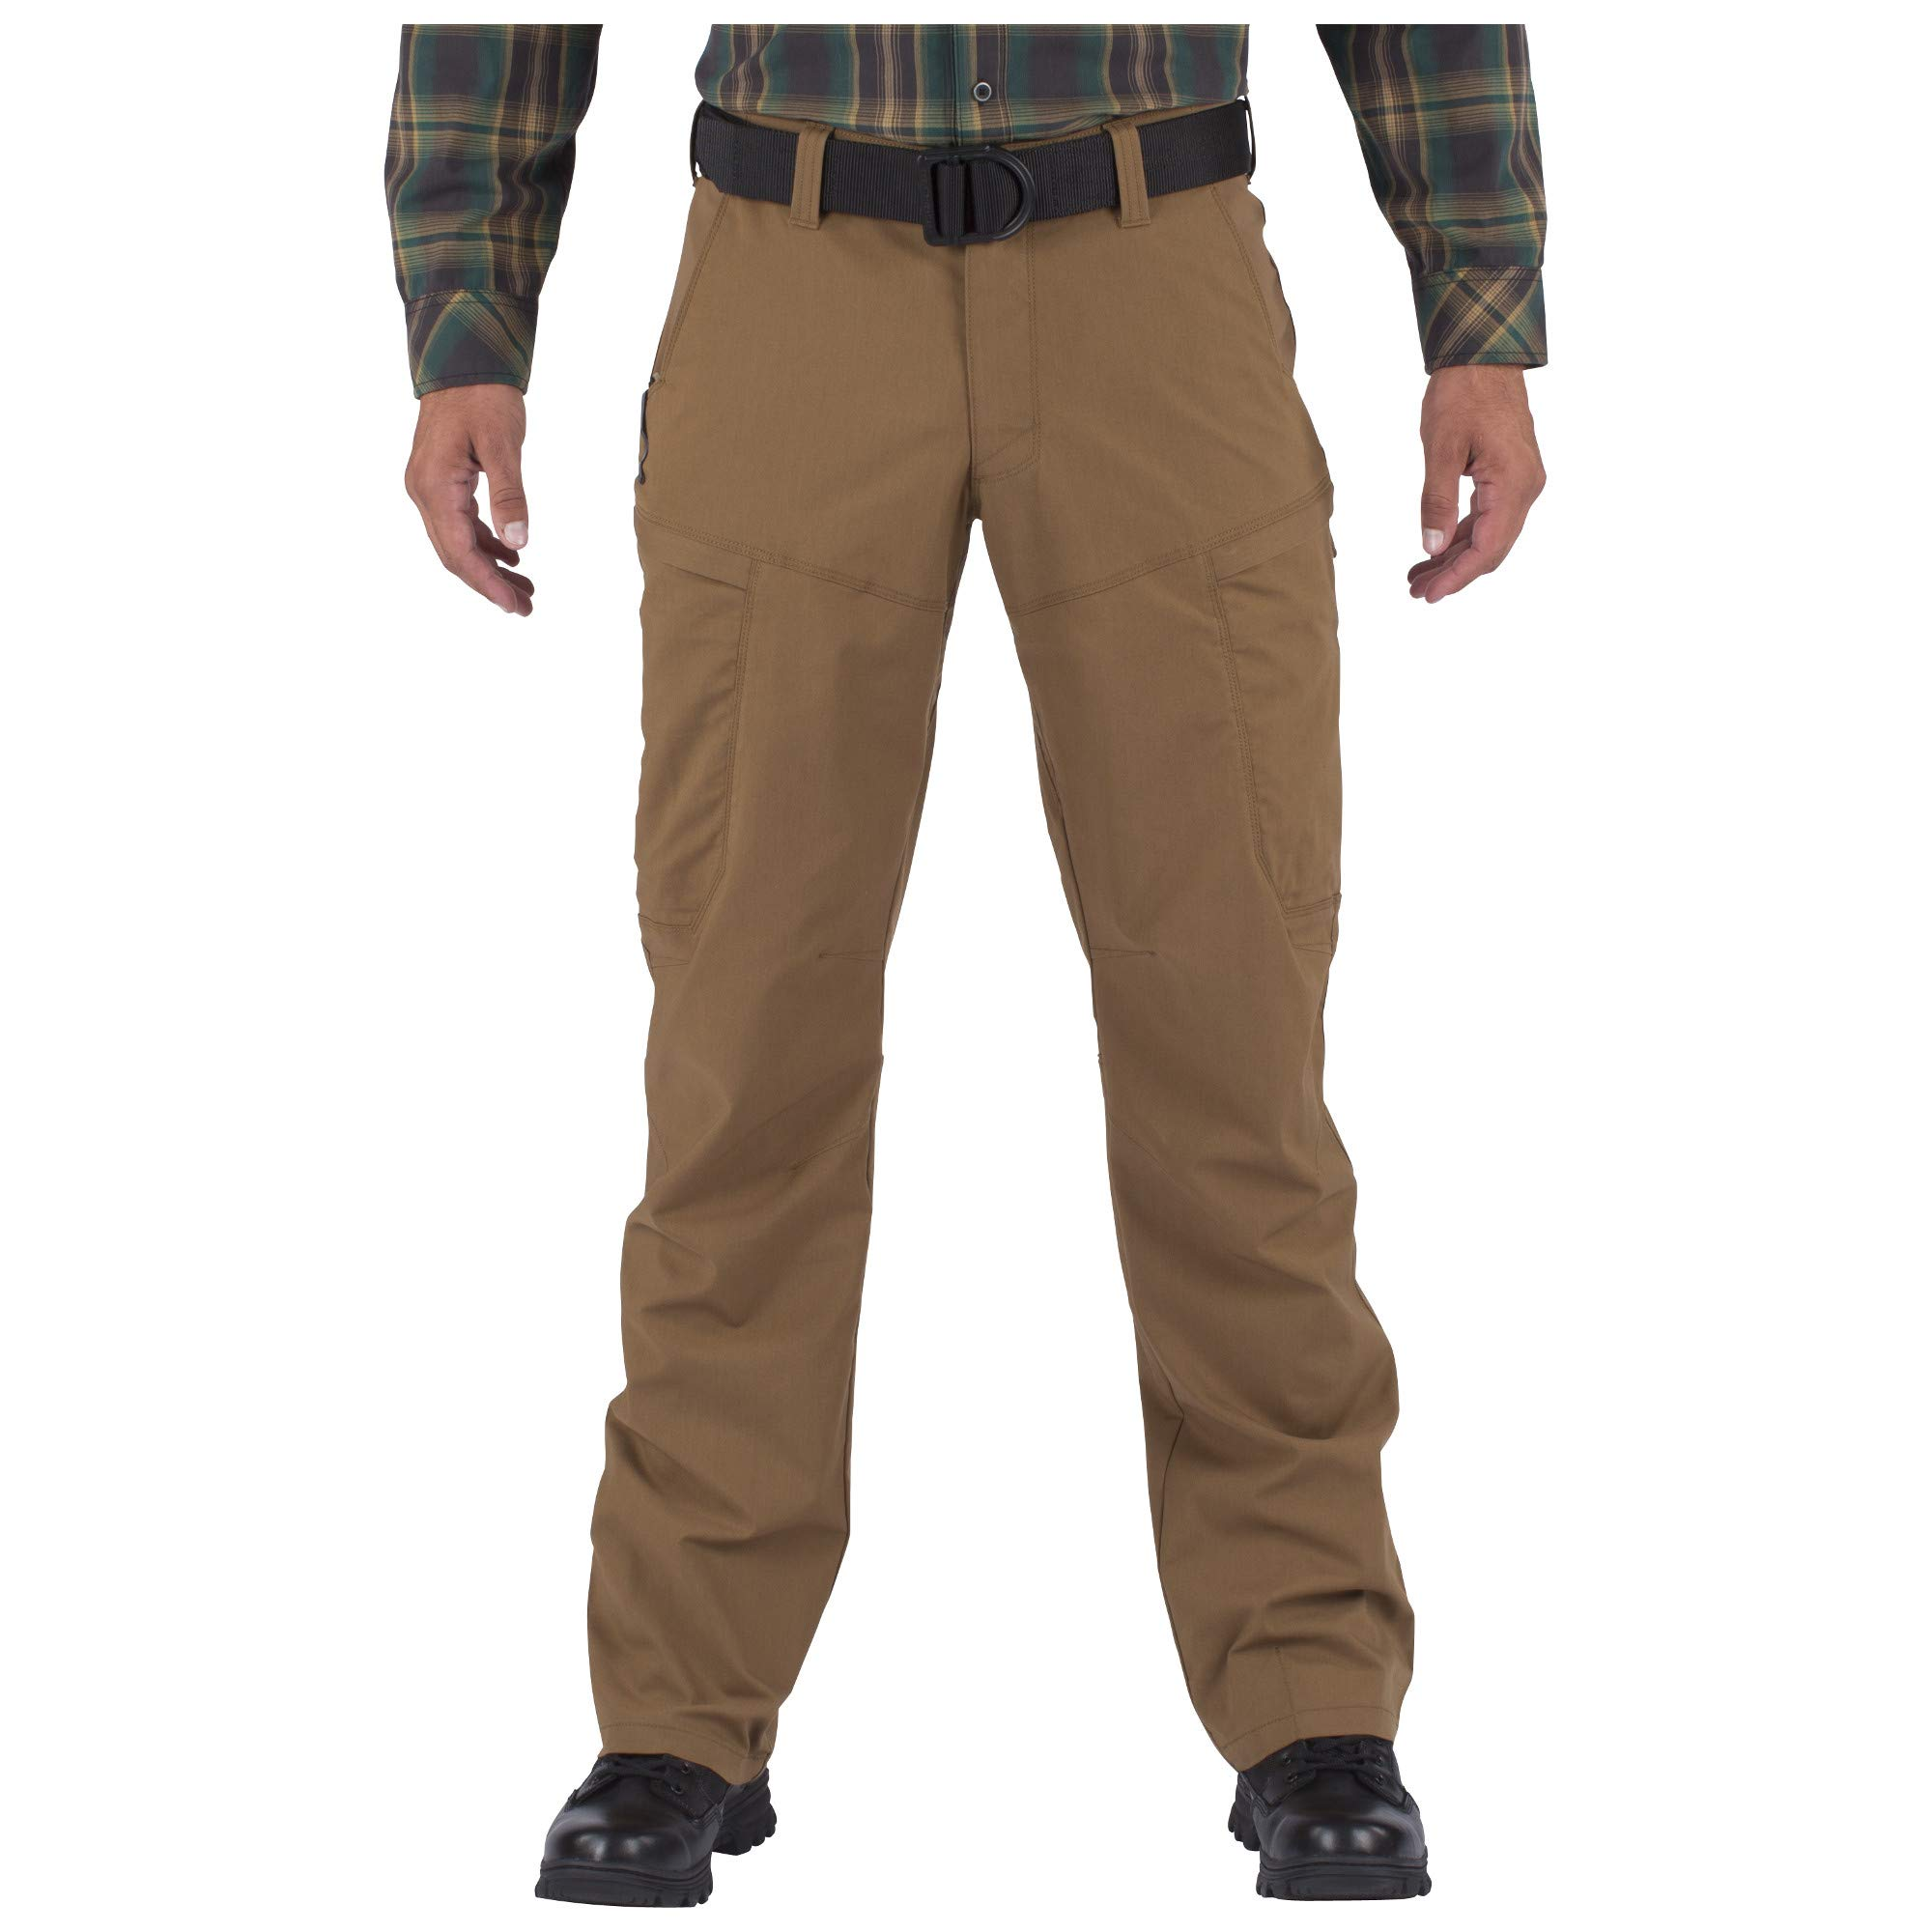 5.11 Men's APEX EDC Stealth Cargo Pocket Tactical Pant Style 74434, Battle Brown, 32W x 34L by 5.11